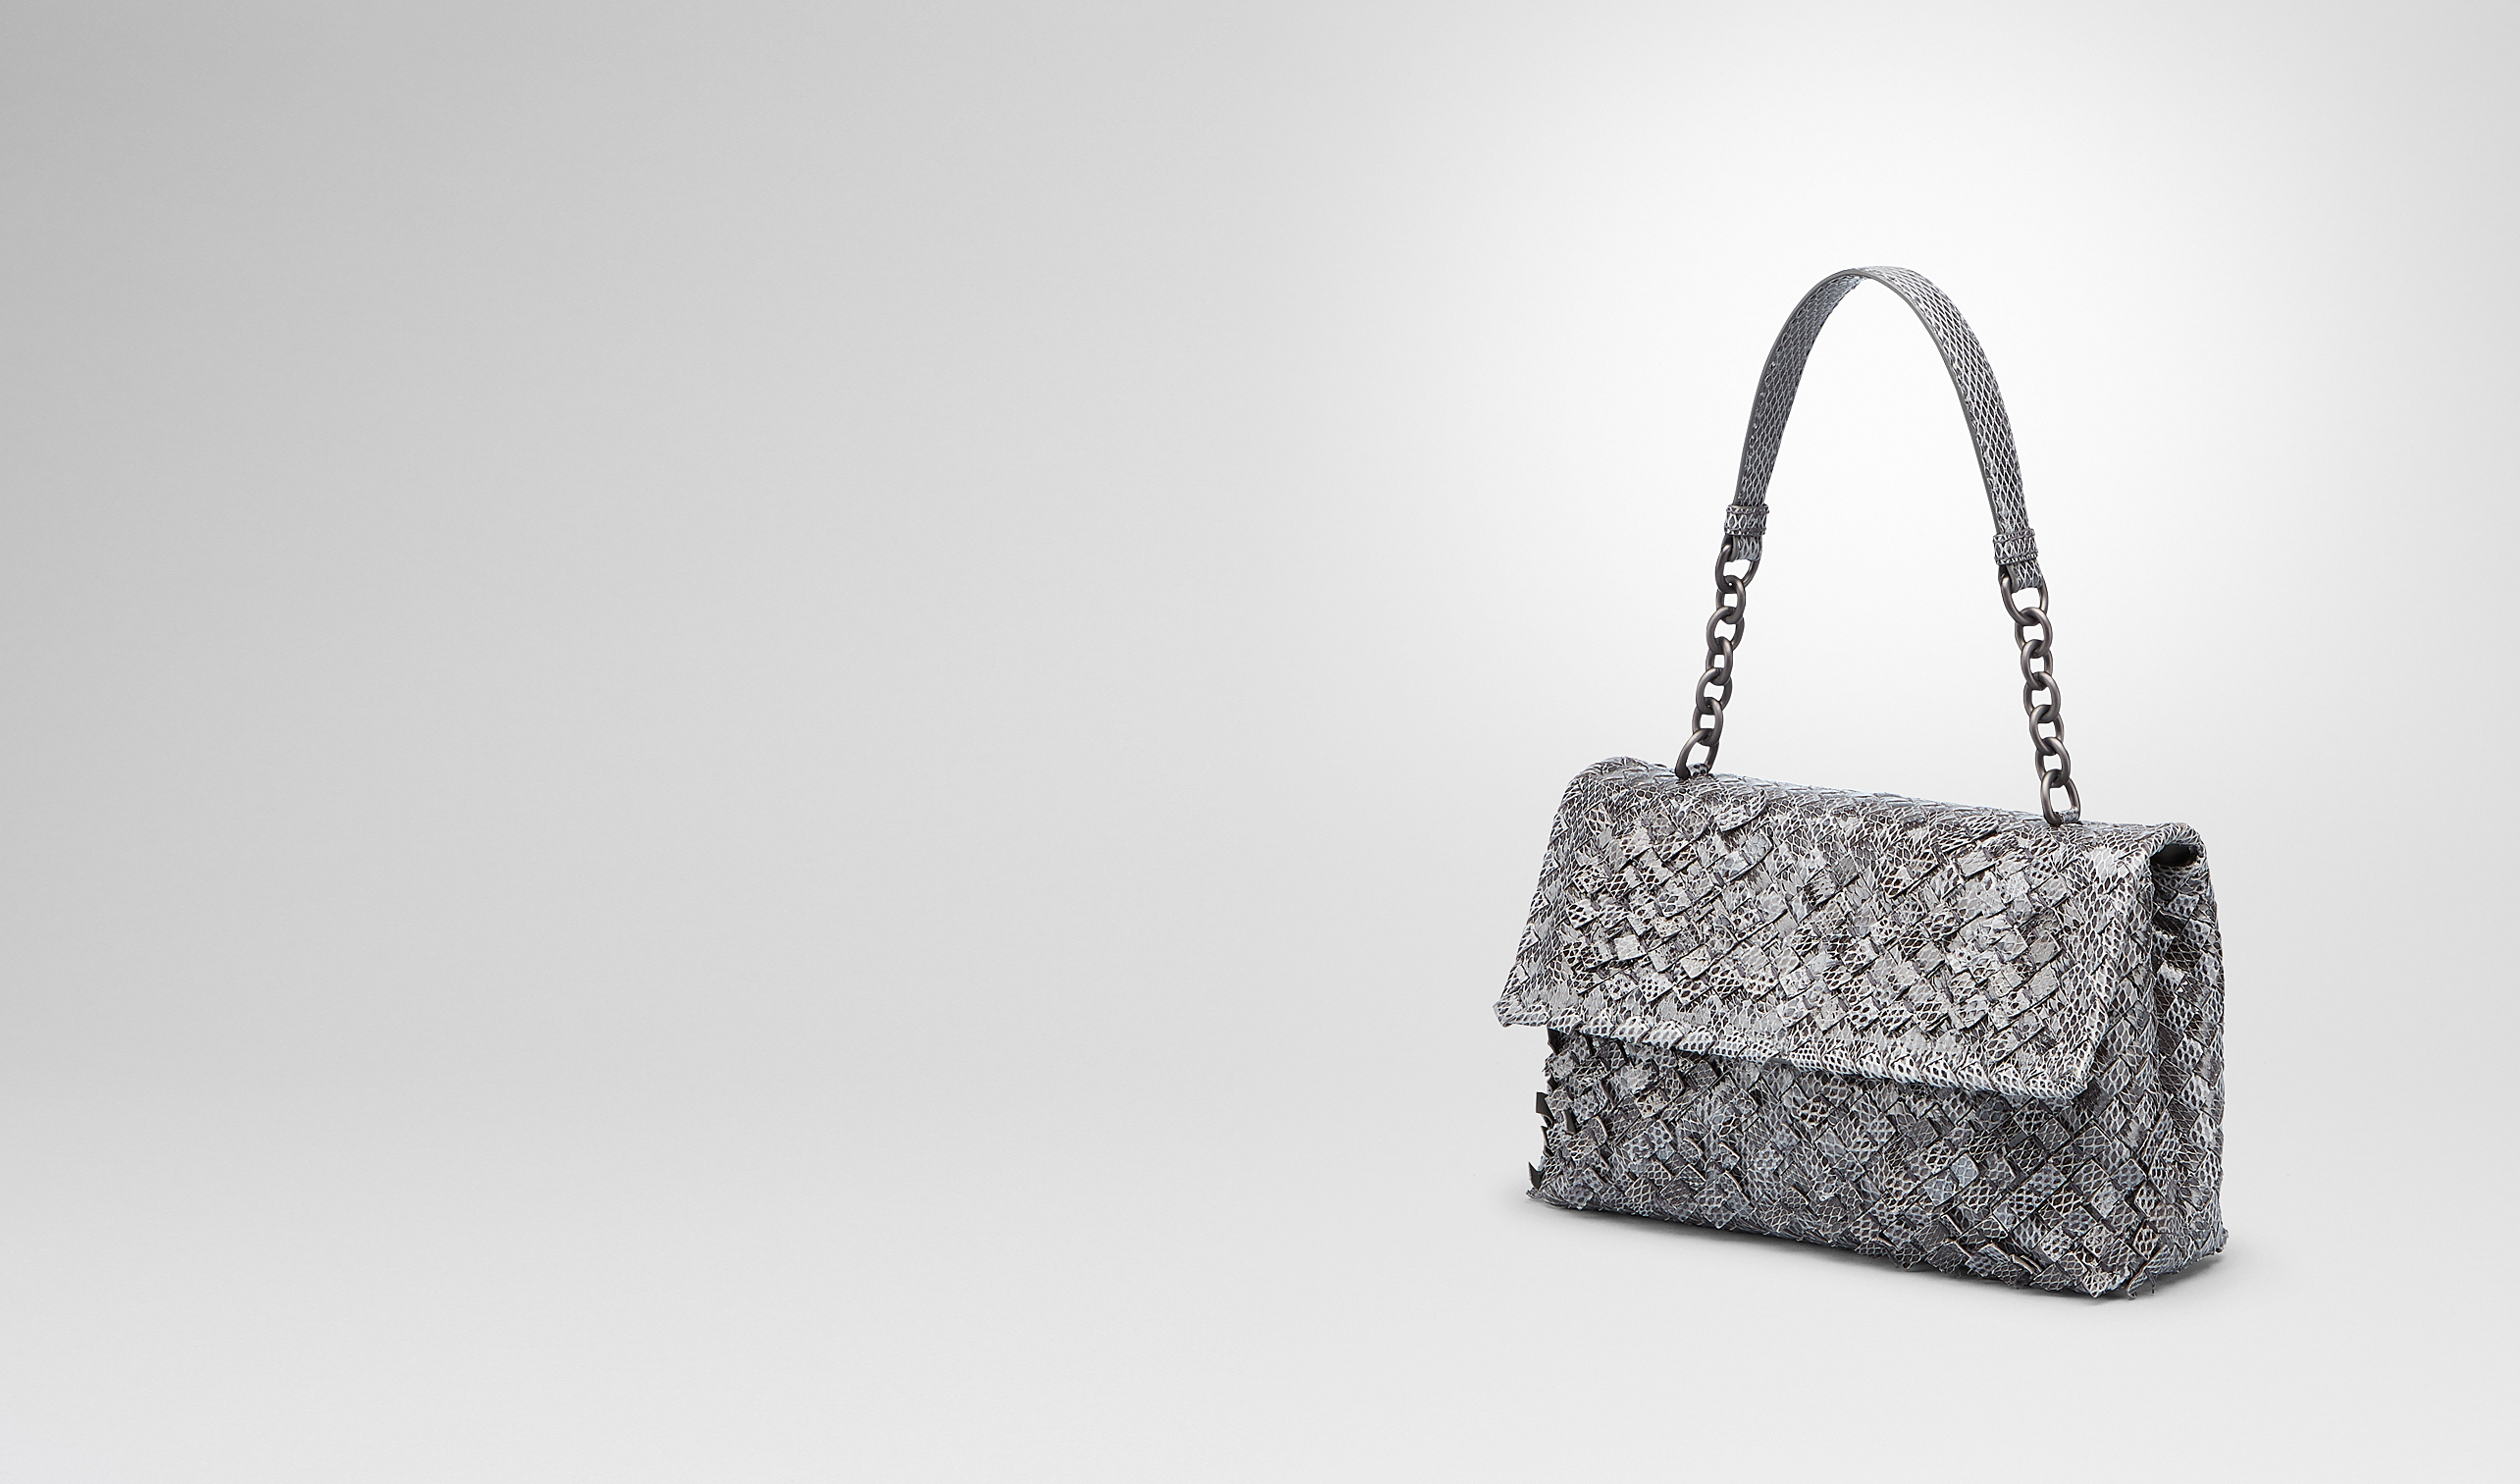 BOTTEGA VENETA Borsa a spalla D BORSA OLIMPIA NEW LIGHT GREY IN AYERS INTRECCIO TOBU pl